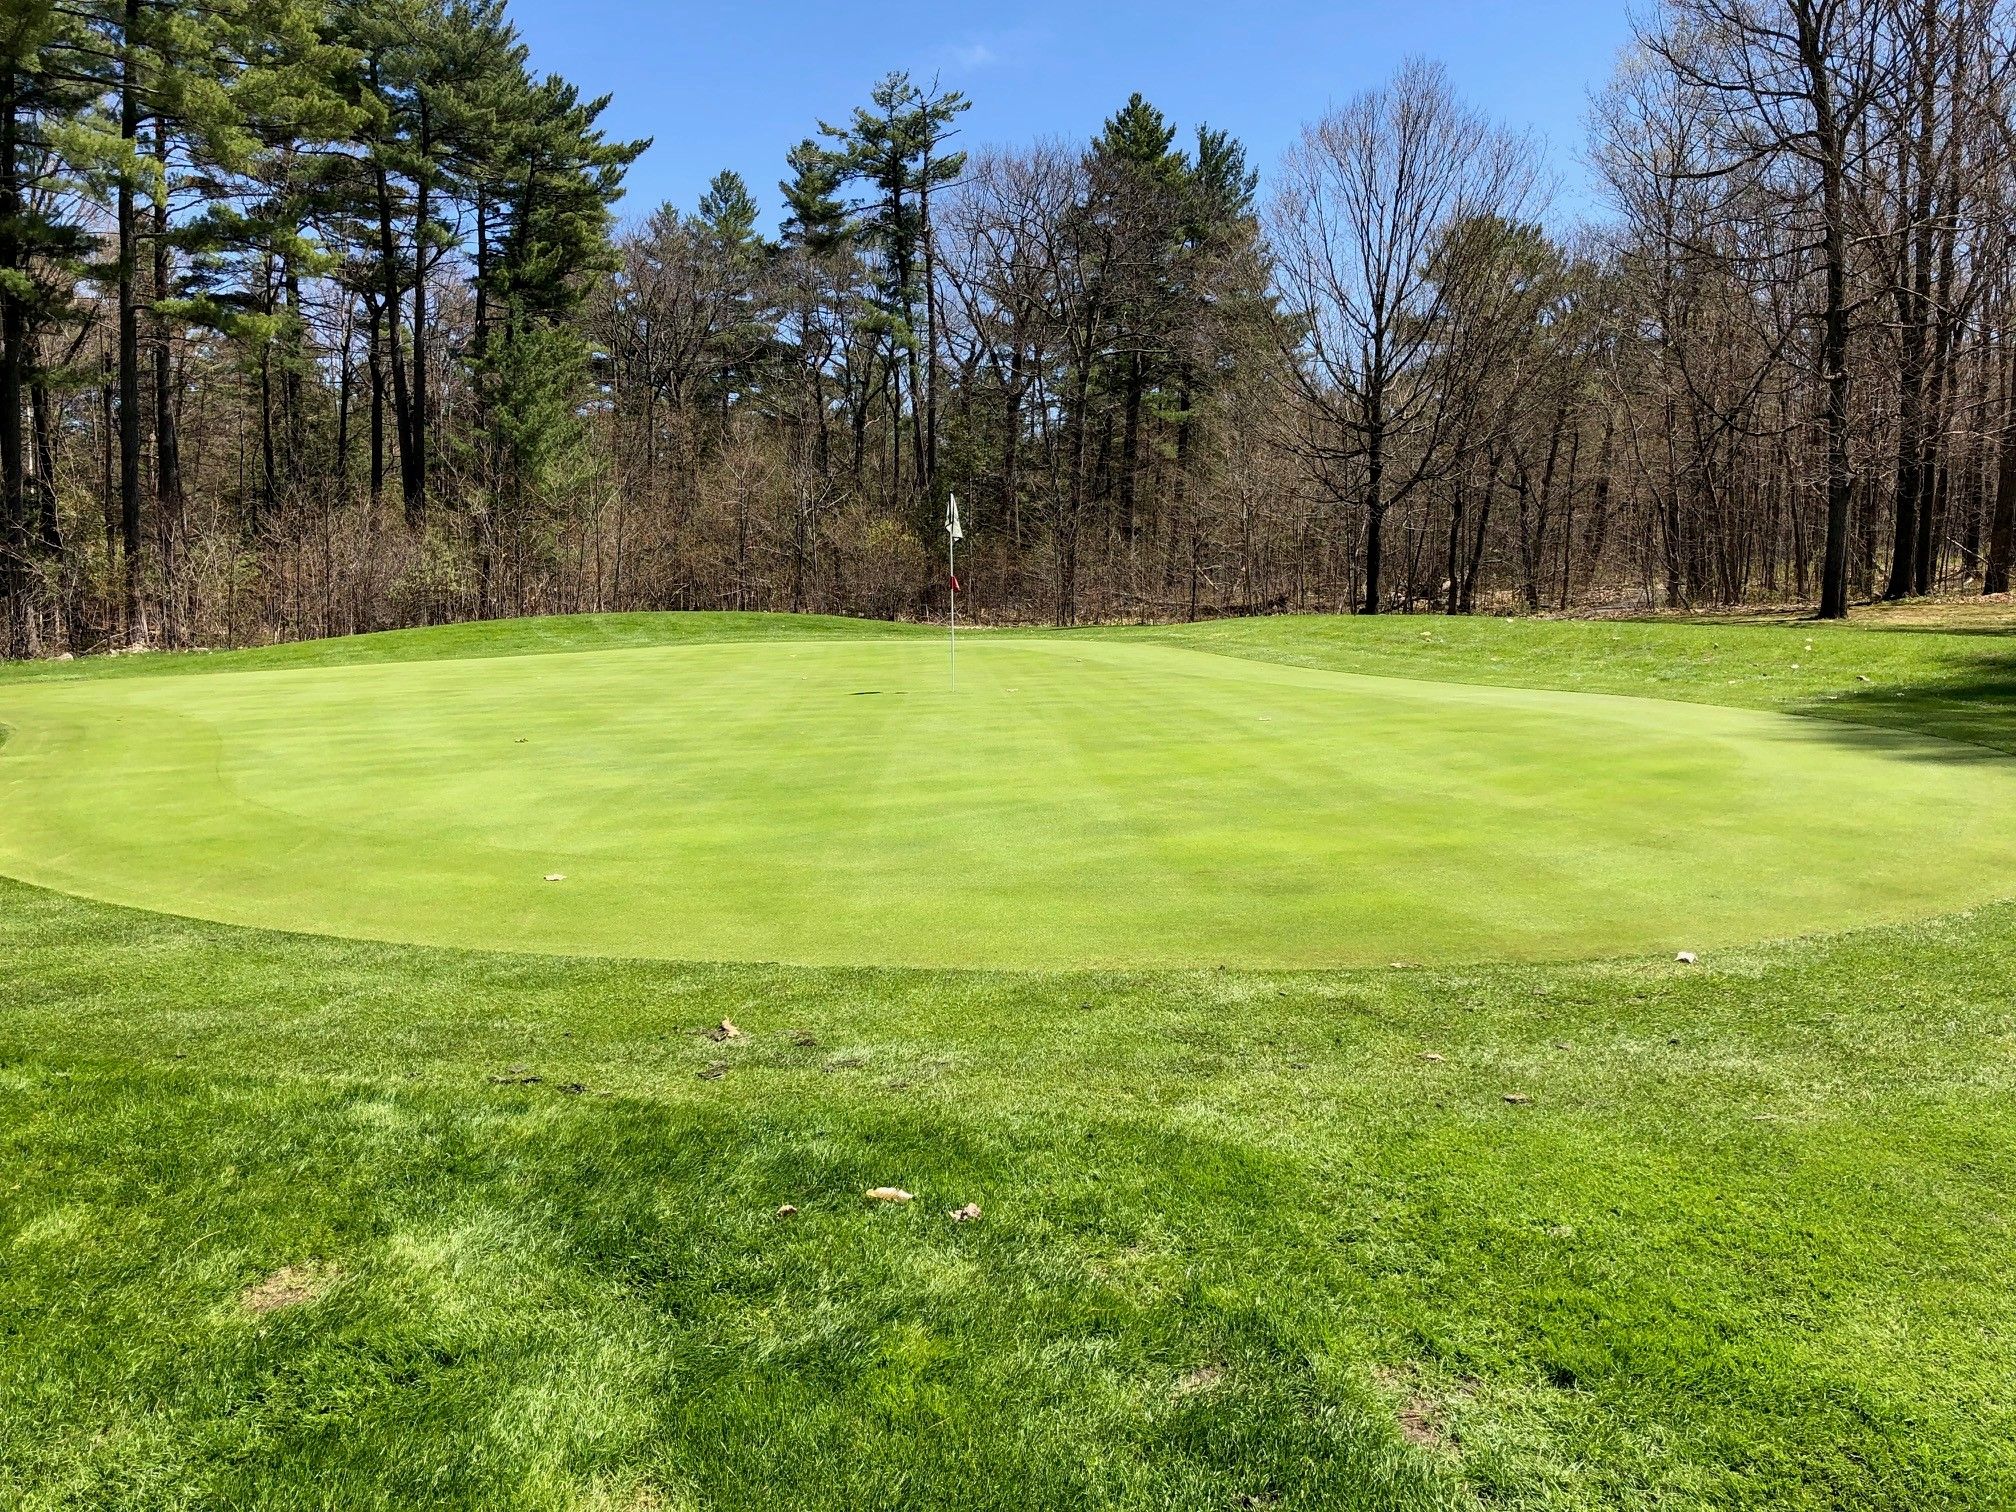 11th hole green - photo taken on May 8, 2019